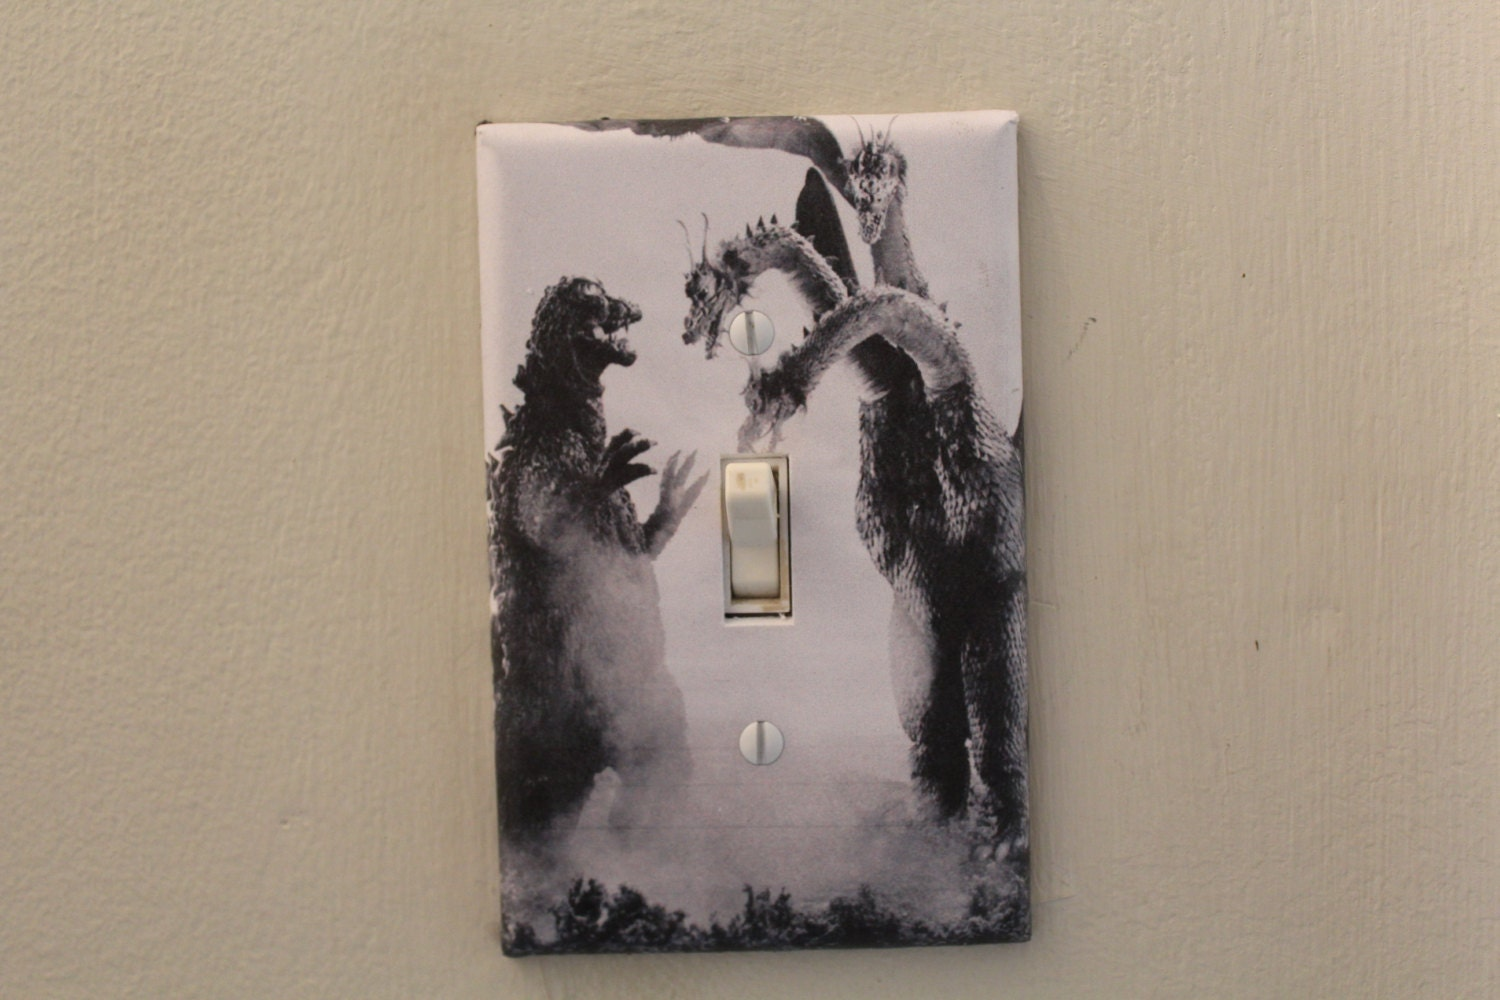 Godzilla decorative light switch cover plate for Unique light switch plates